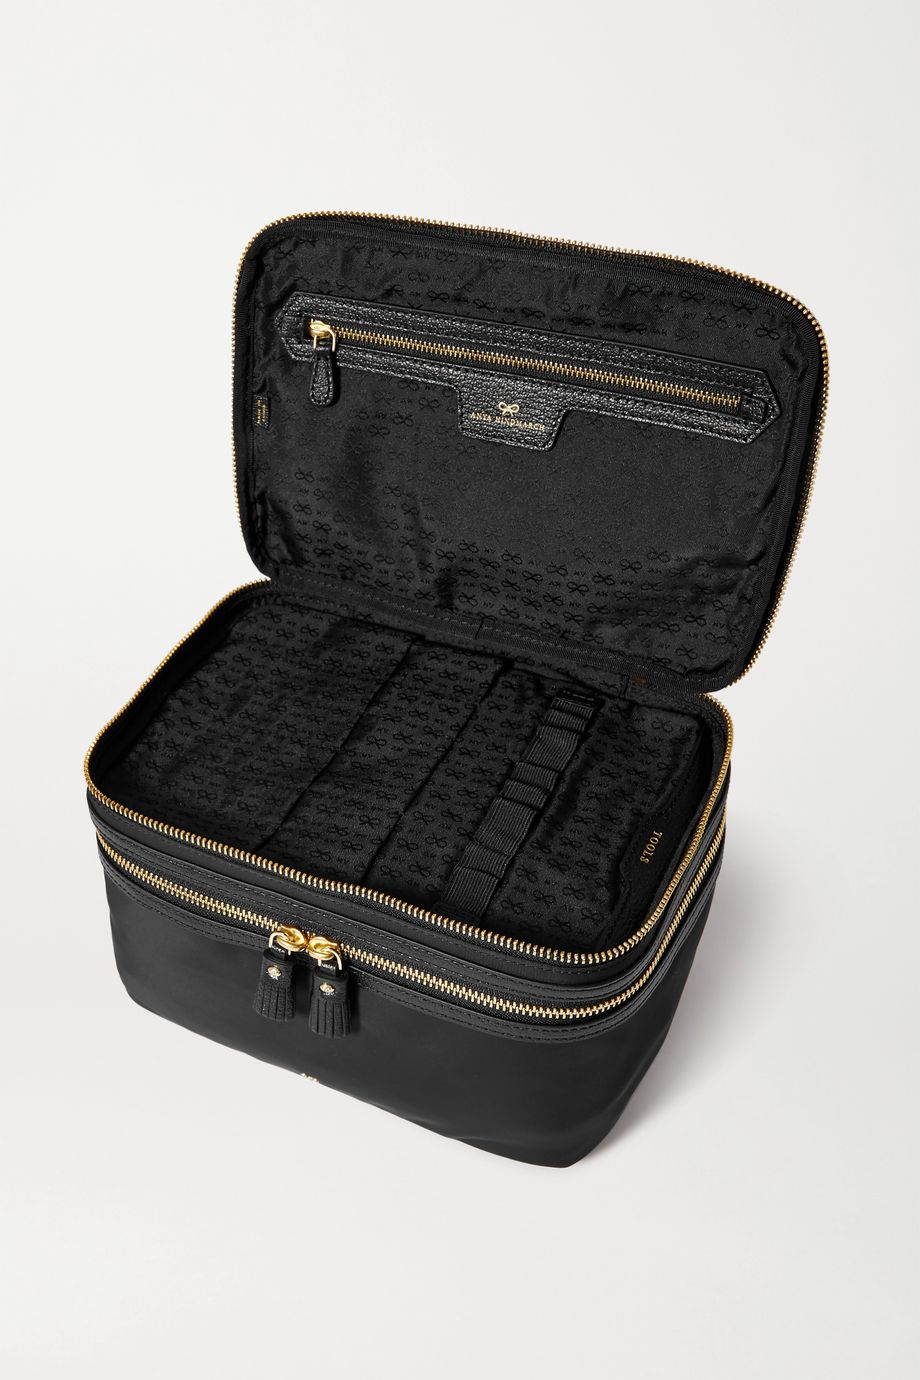 Anya Hindmarch Vanity Kit leather-trimmed ECONYL cosmetics case